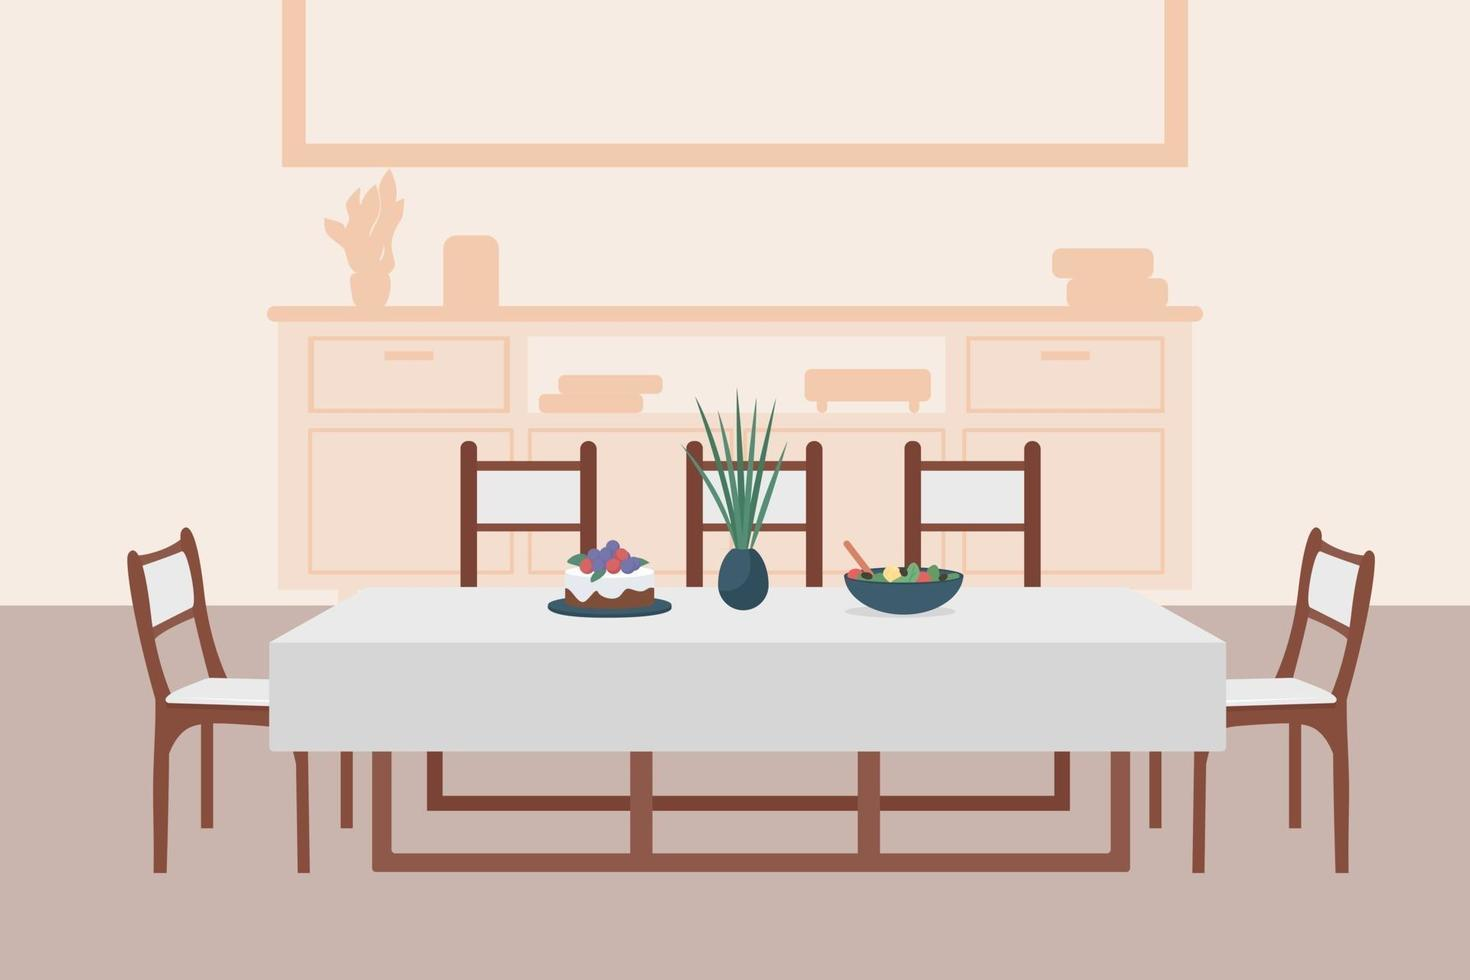 Luxury dining room flat color vector illustration